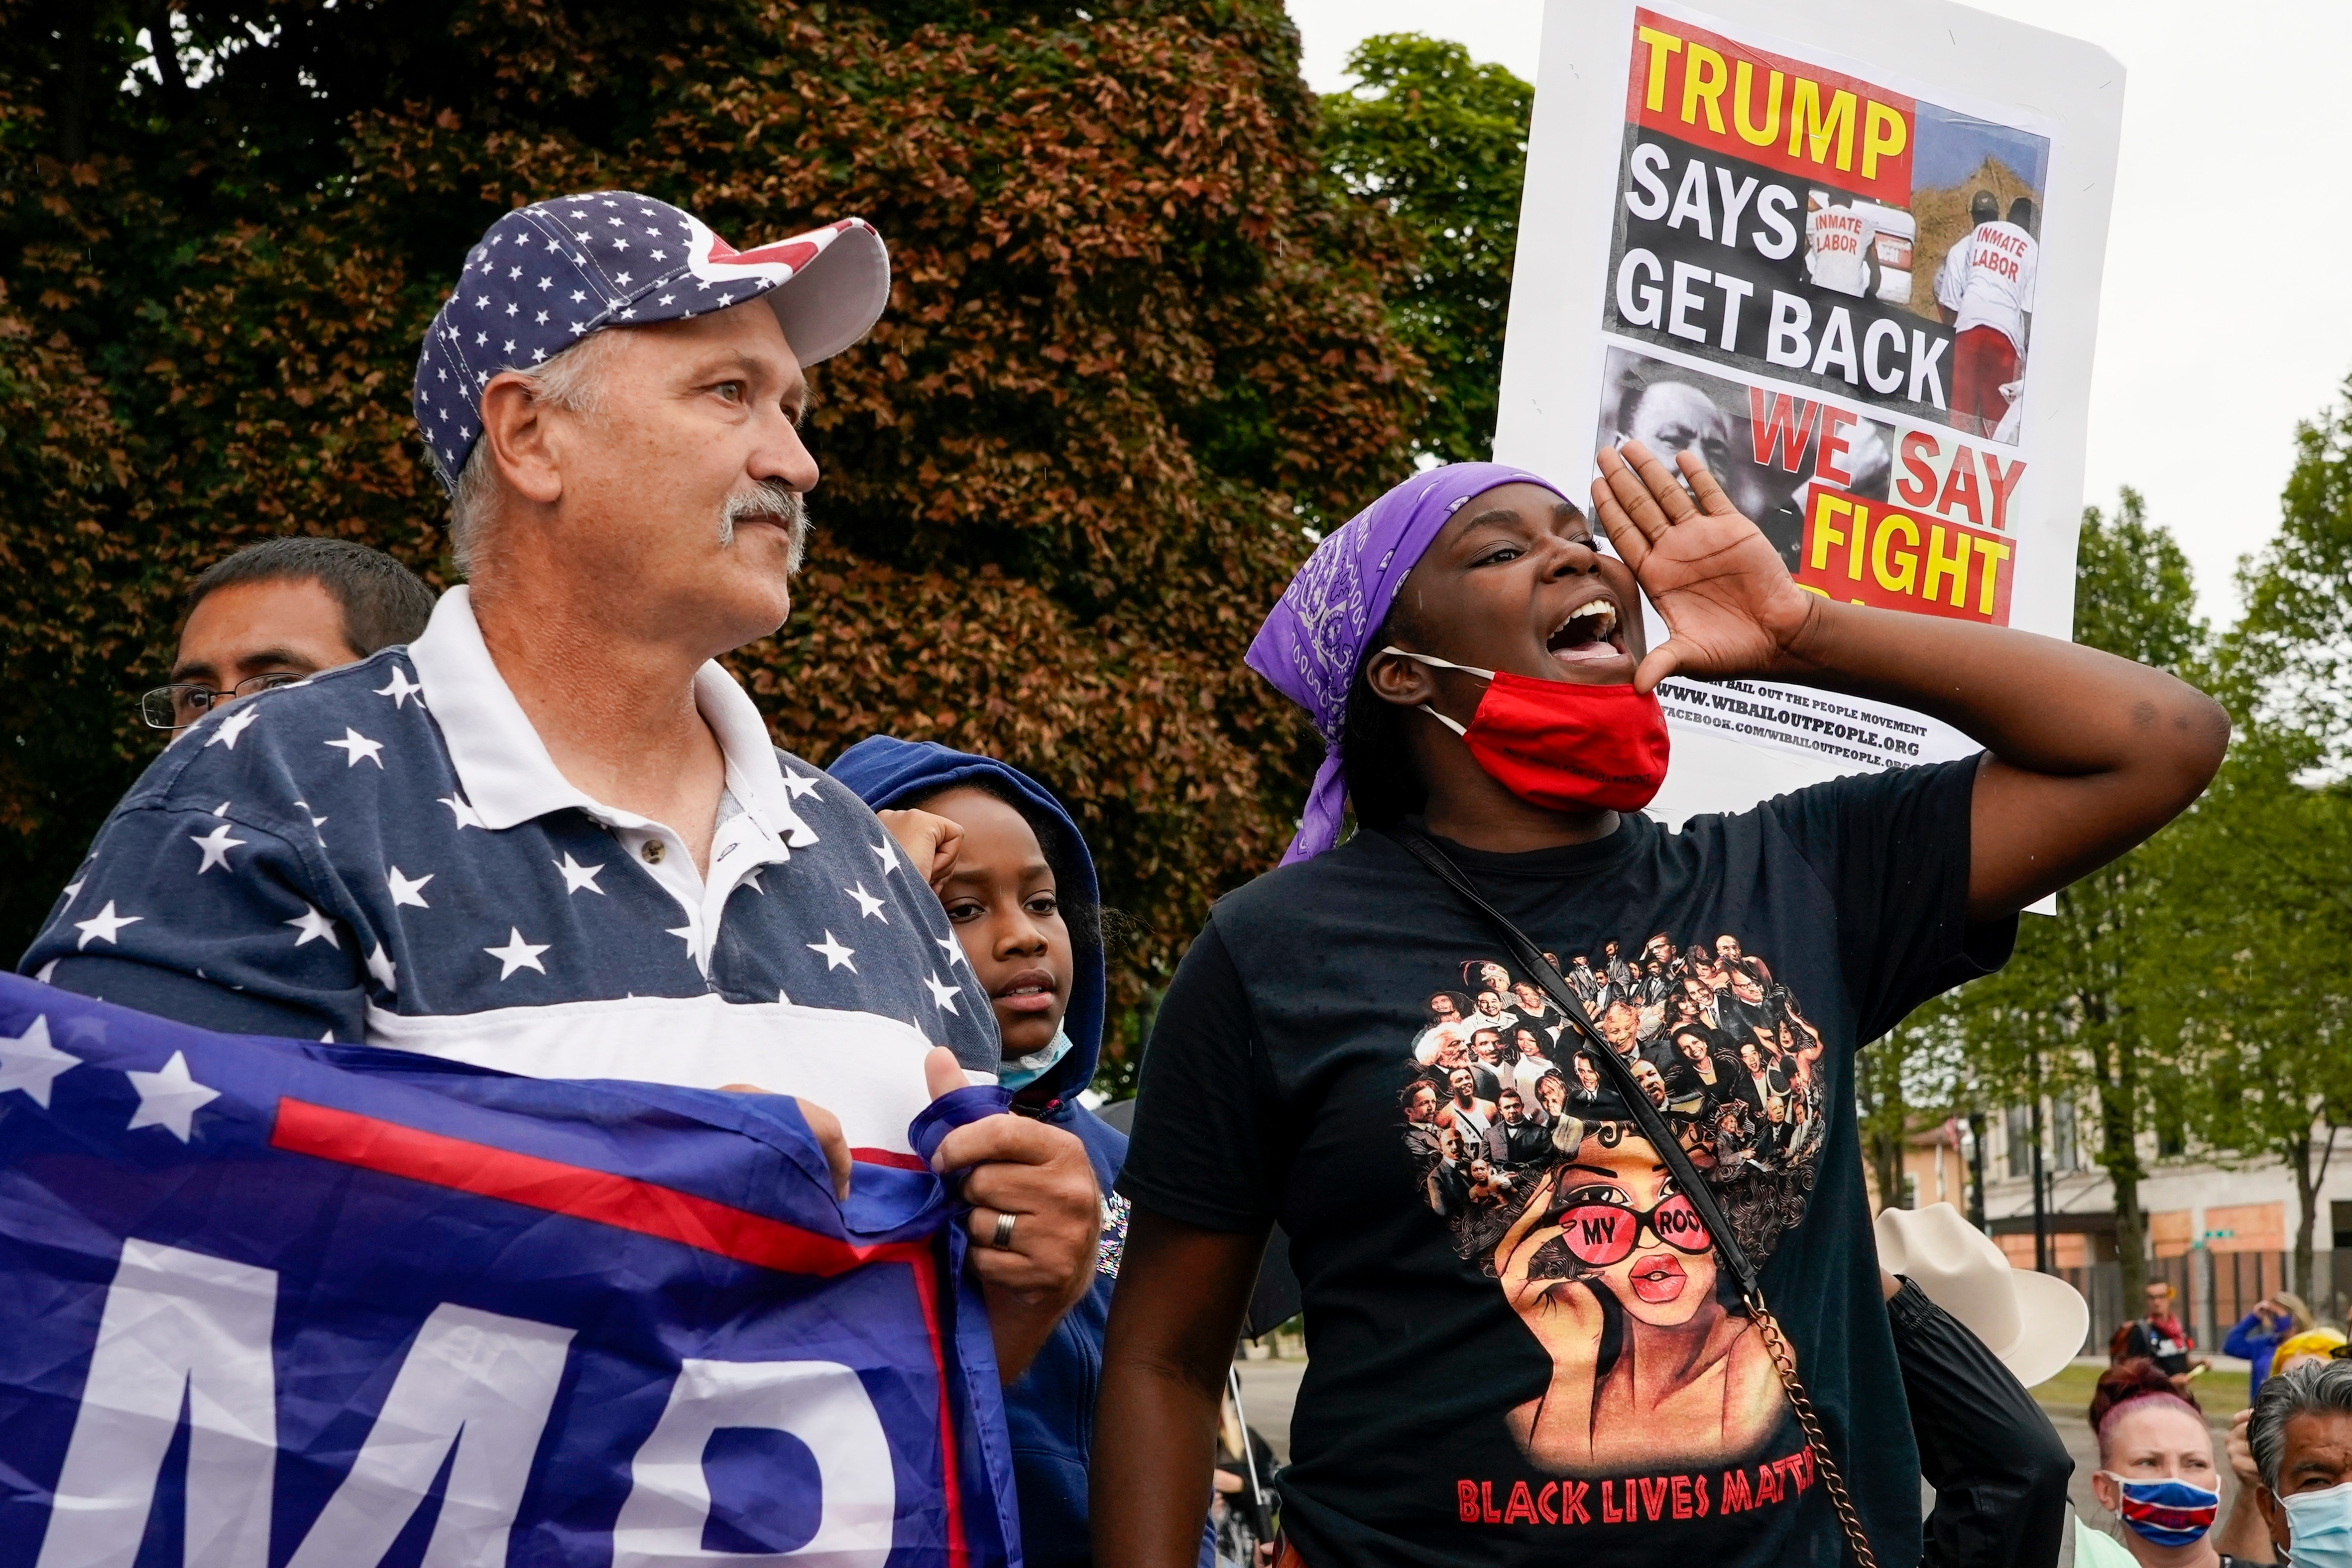 Supporters of both President Donald Trump and Black Lives Matters clash in a park outside the Kenosha County Courthouse